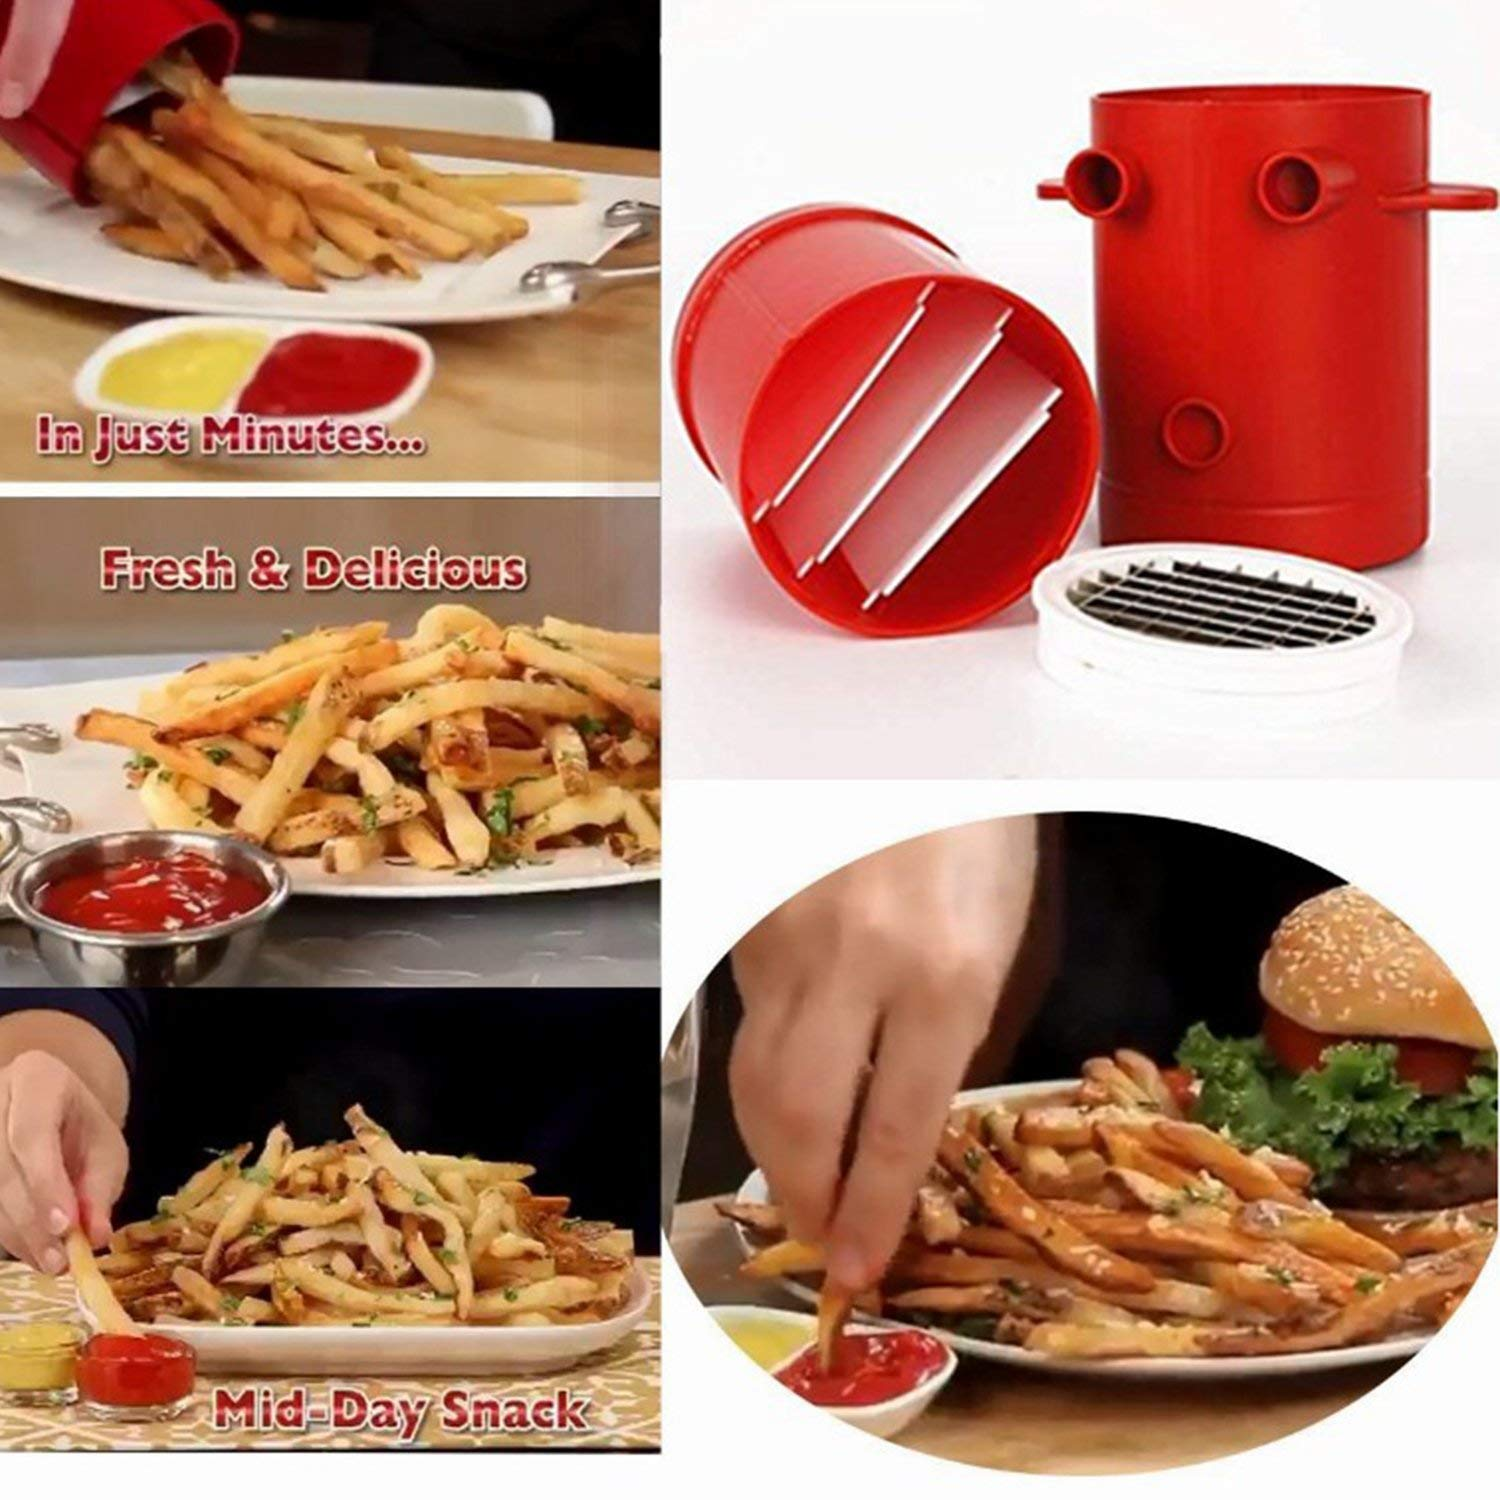 Potatoes Fries Maker, Potato Slicers French Fries Maker, Jiffy Fries Maker Potato Chipper & Microwave Container 2-in-1, No Deep-Fry To Make Healthy Fries (Red)